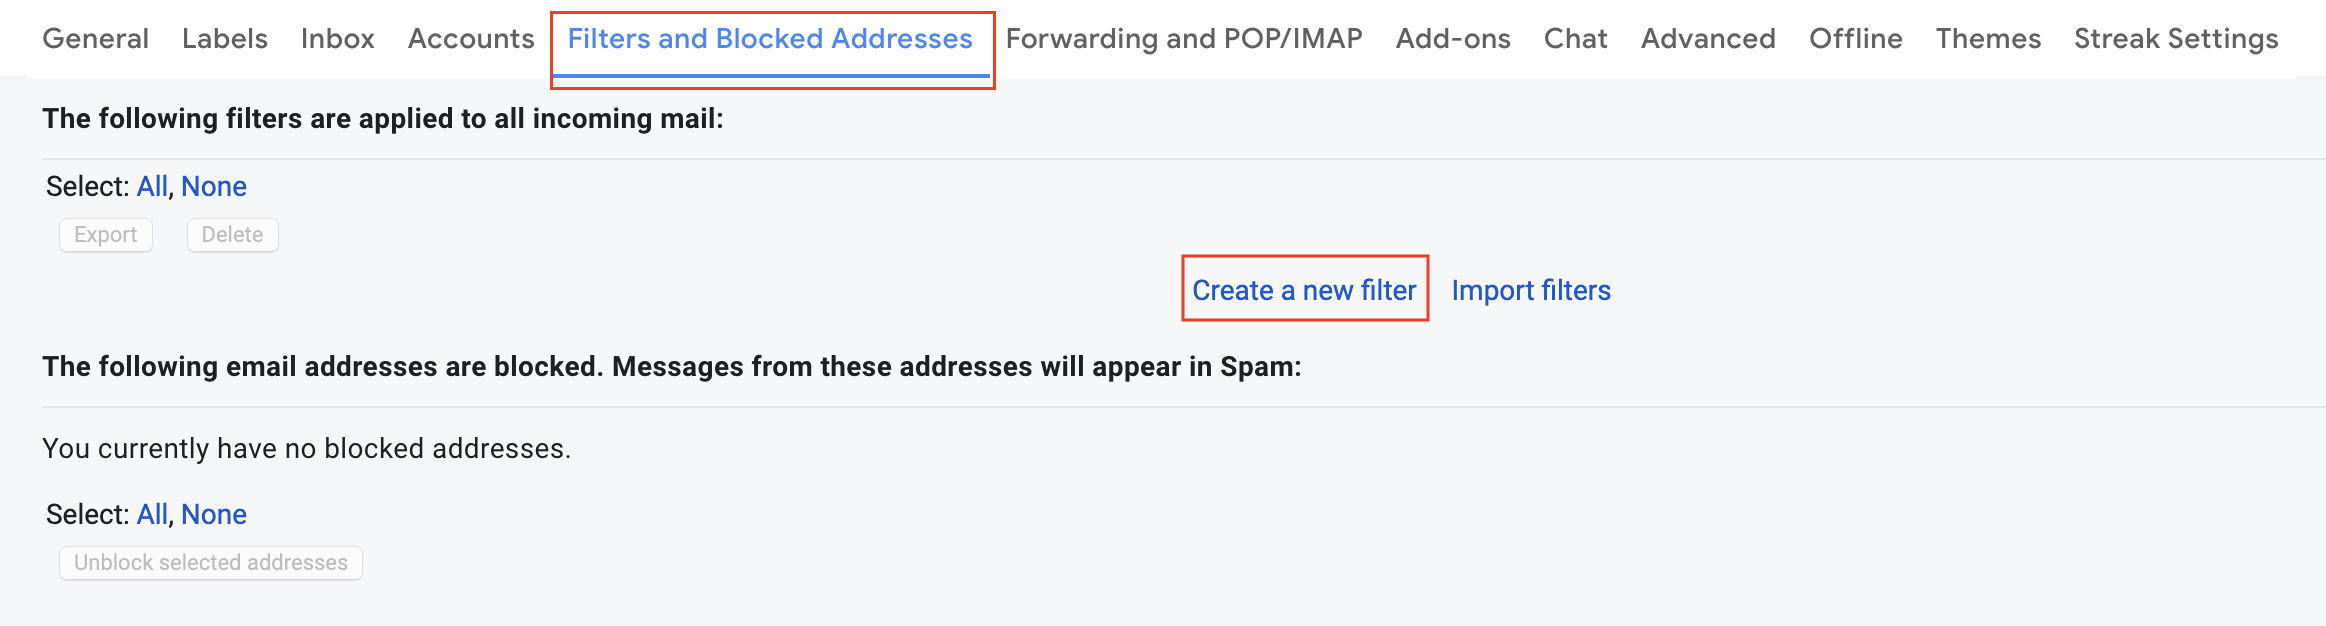 Creating filters in Gmail